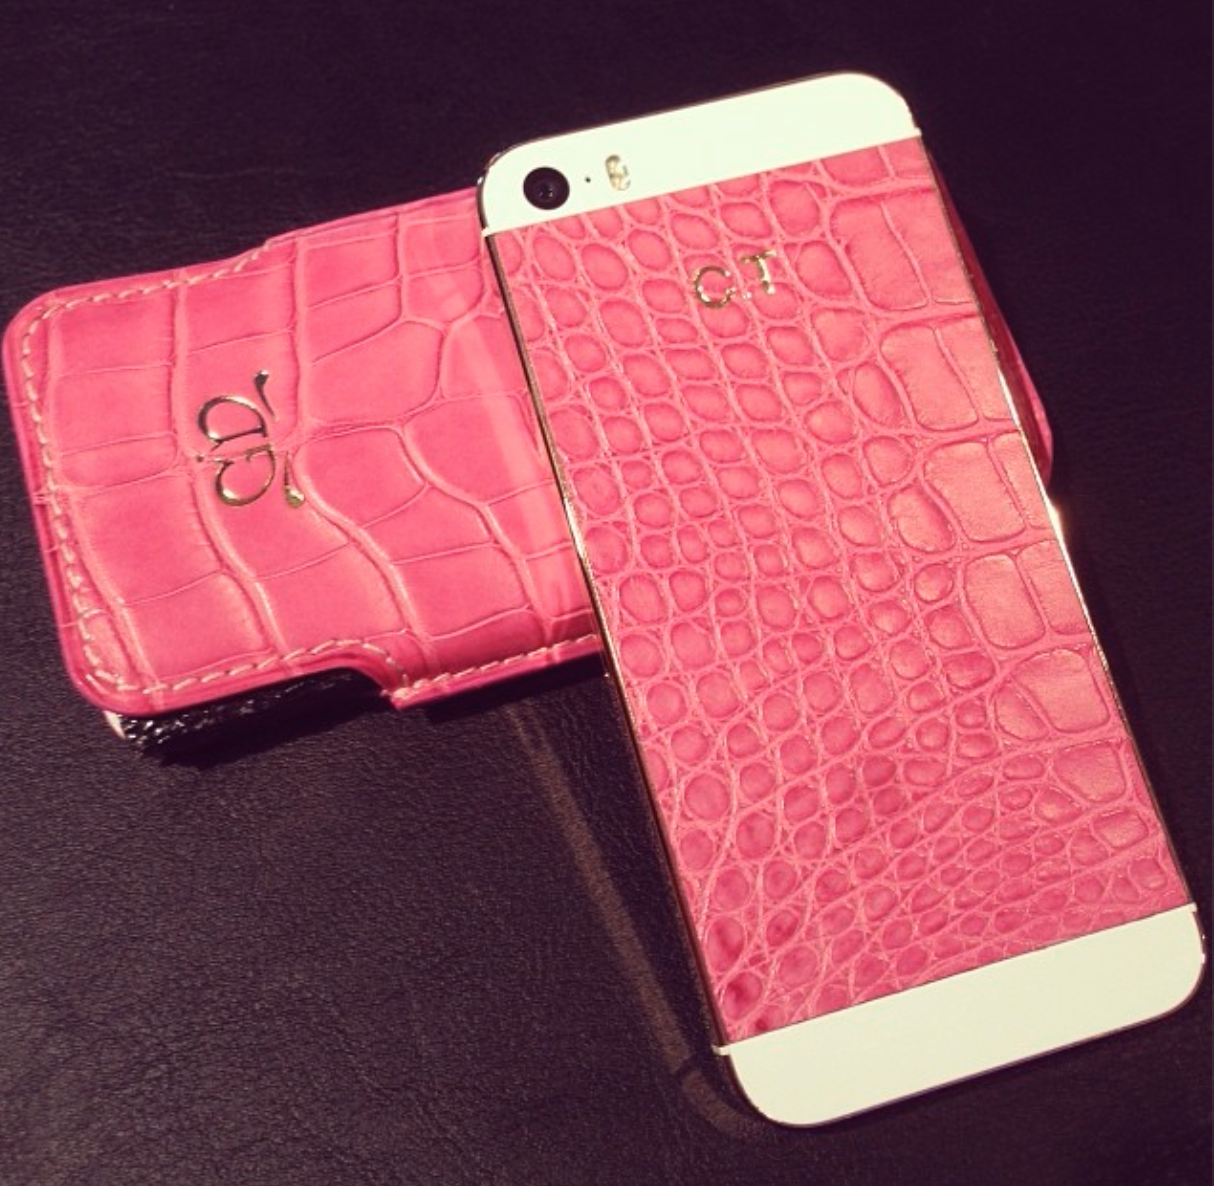 iPhone 5S Pink